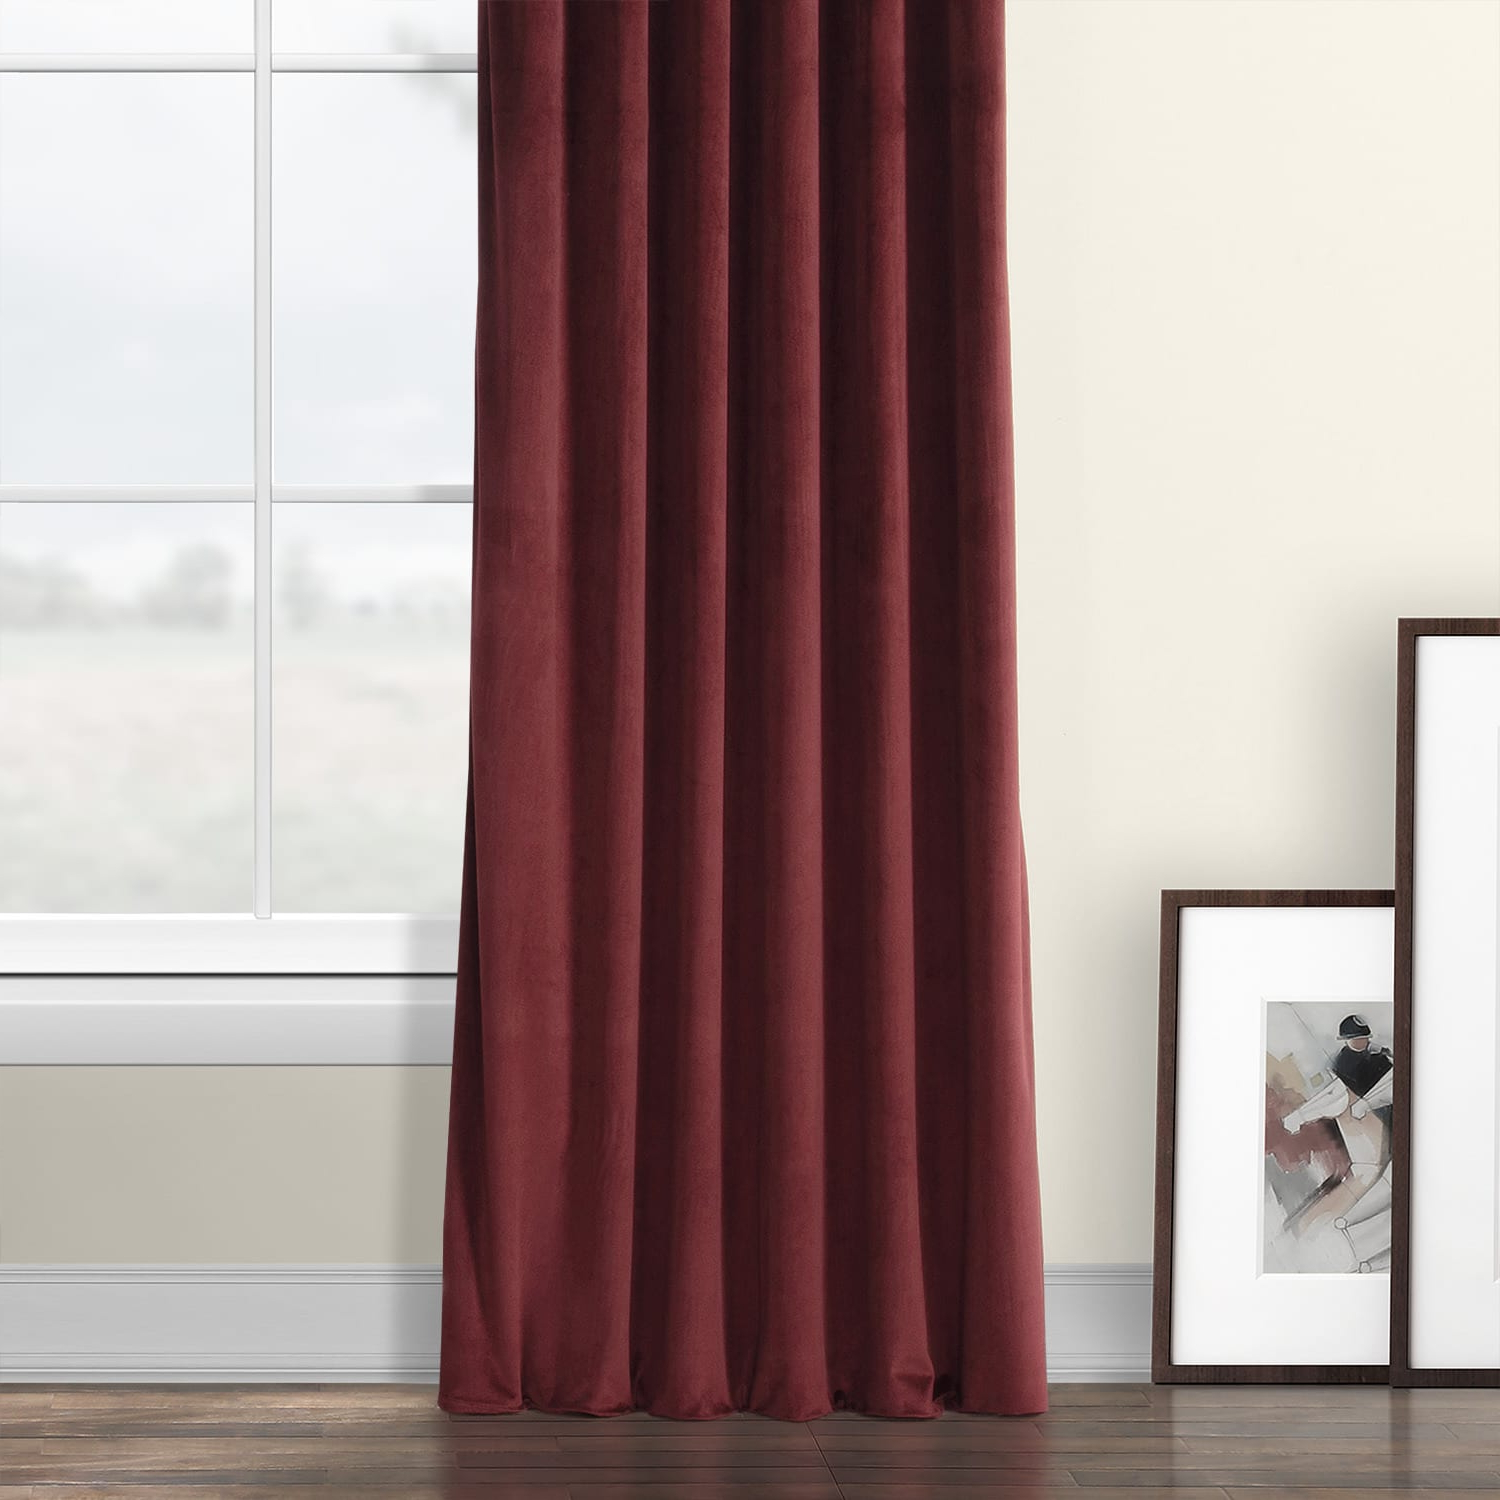 Details About Heritage Plush Velvet Curtain (Sold Per Panel) In Most Popular Heritage Plush Velvet Curtains (View 5 of 20)